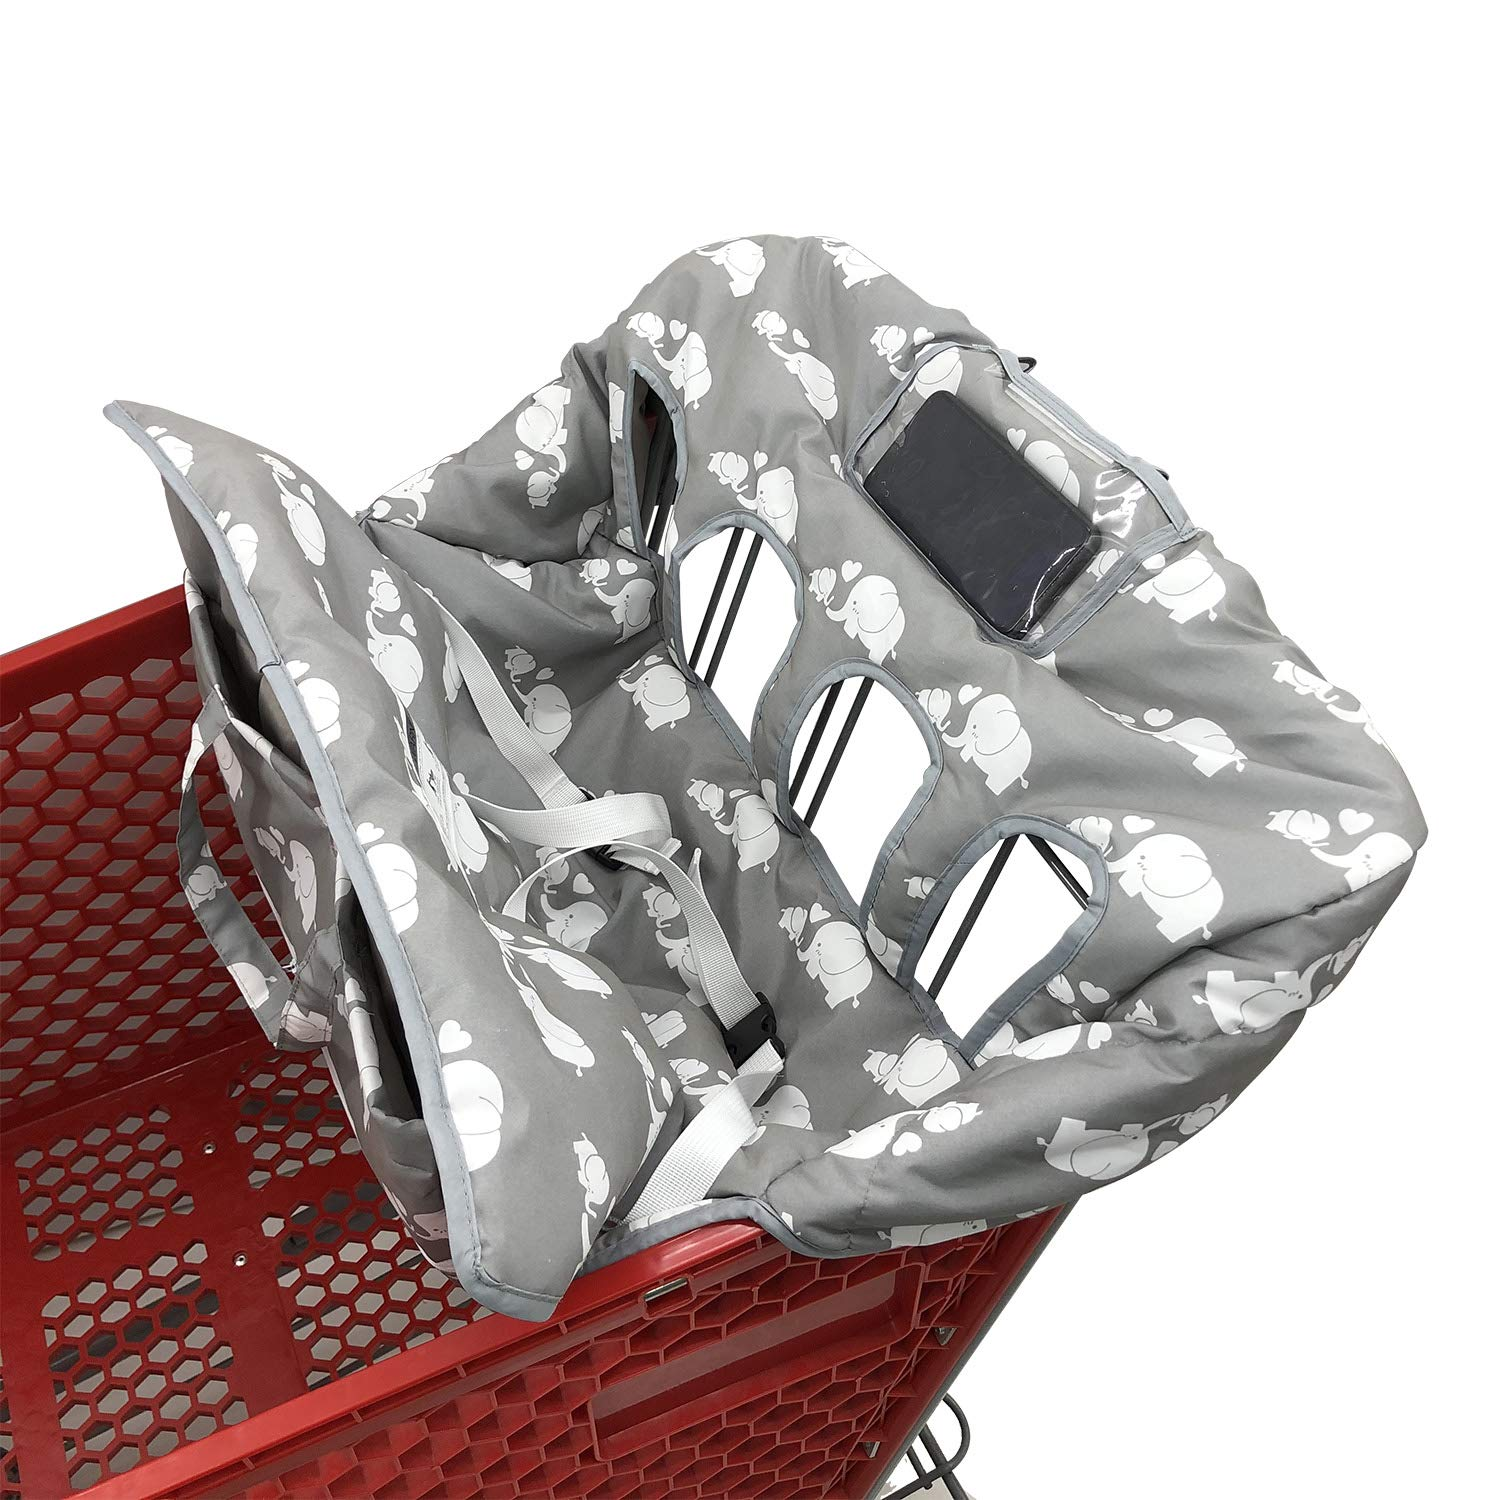 Twin Double Shopping Cart Cover for Baby Siblings with Carrying Case. Fit Wholesale Warehouse Grocery Stores Like Costco SAMS Club (White Elephant)